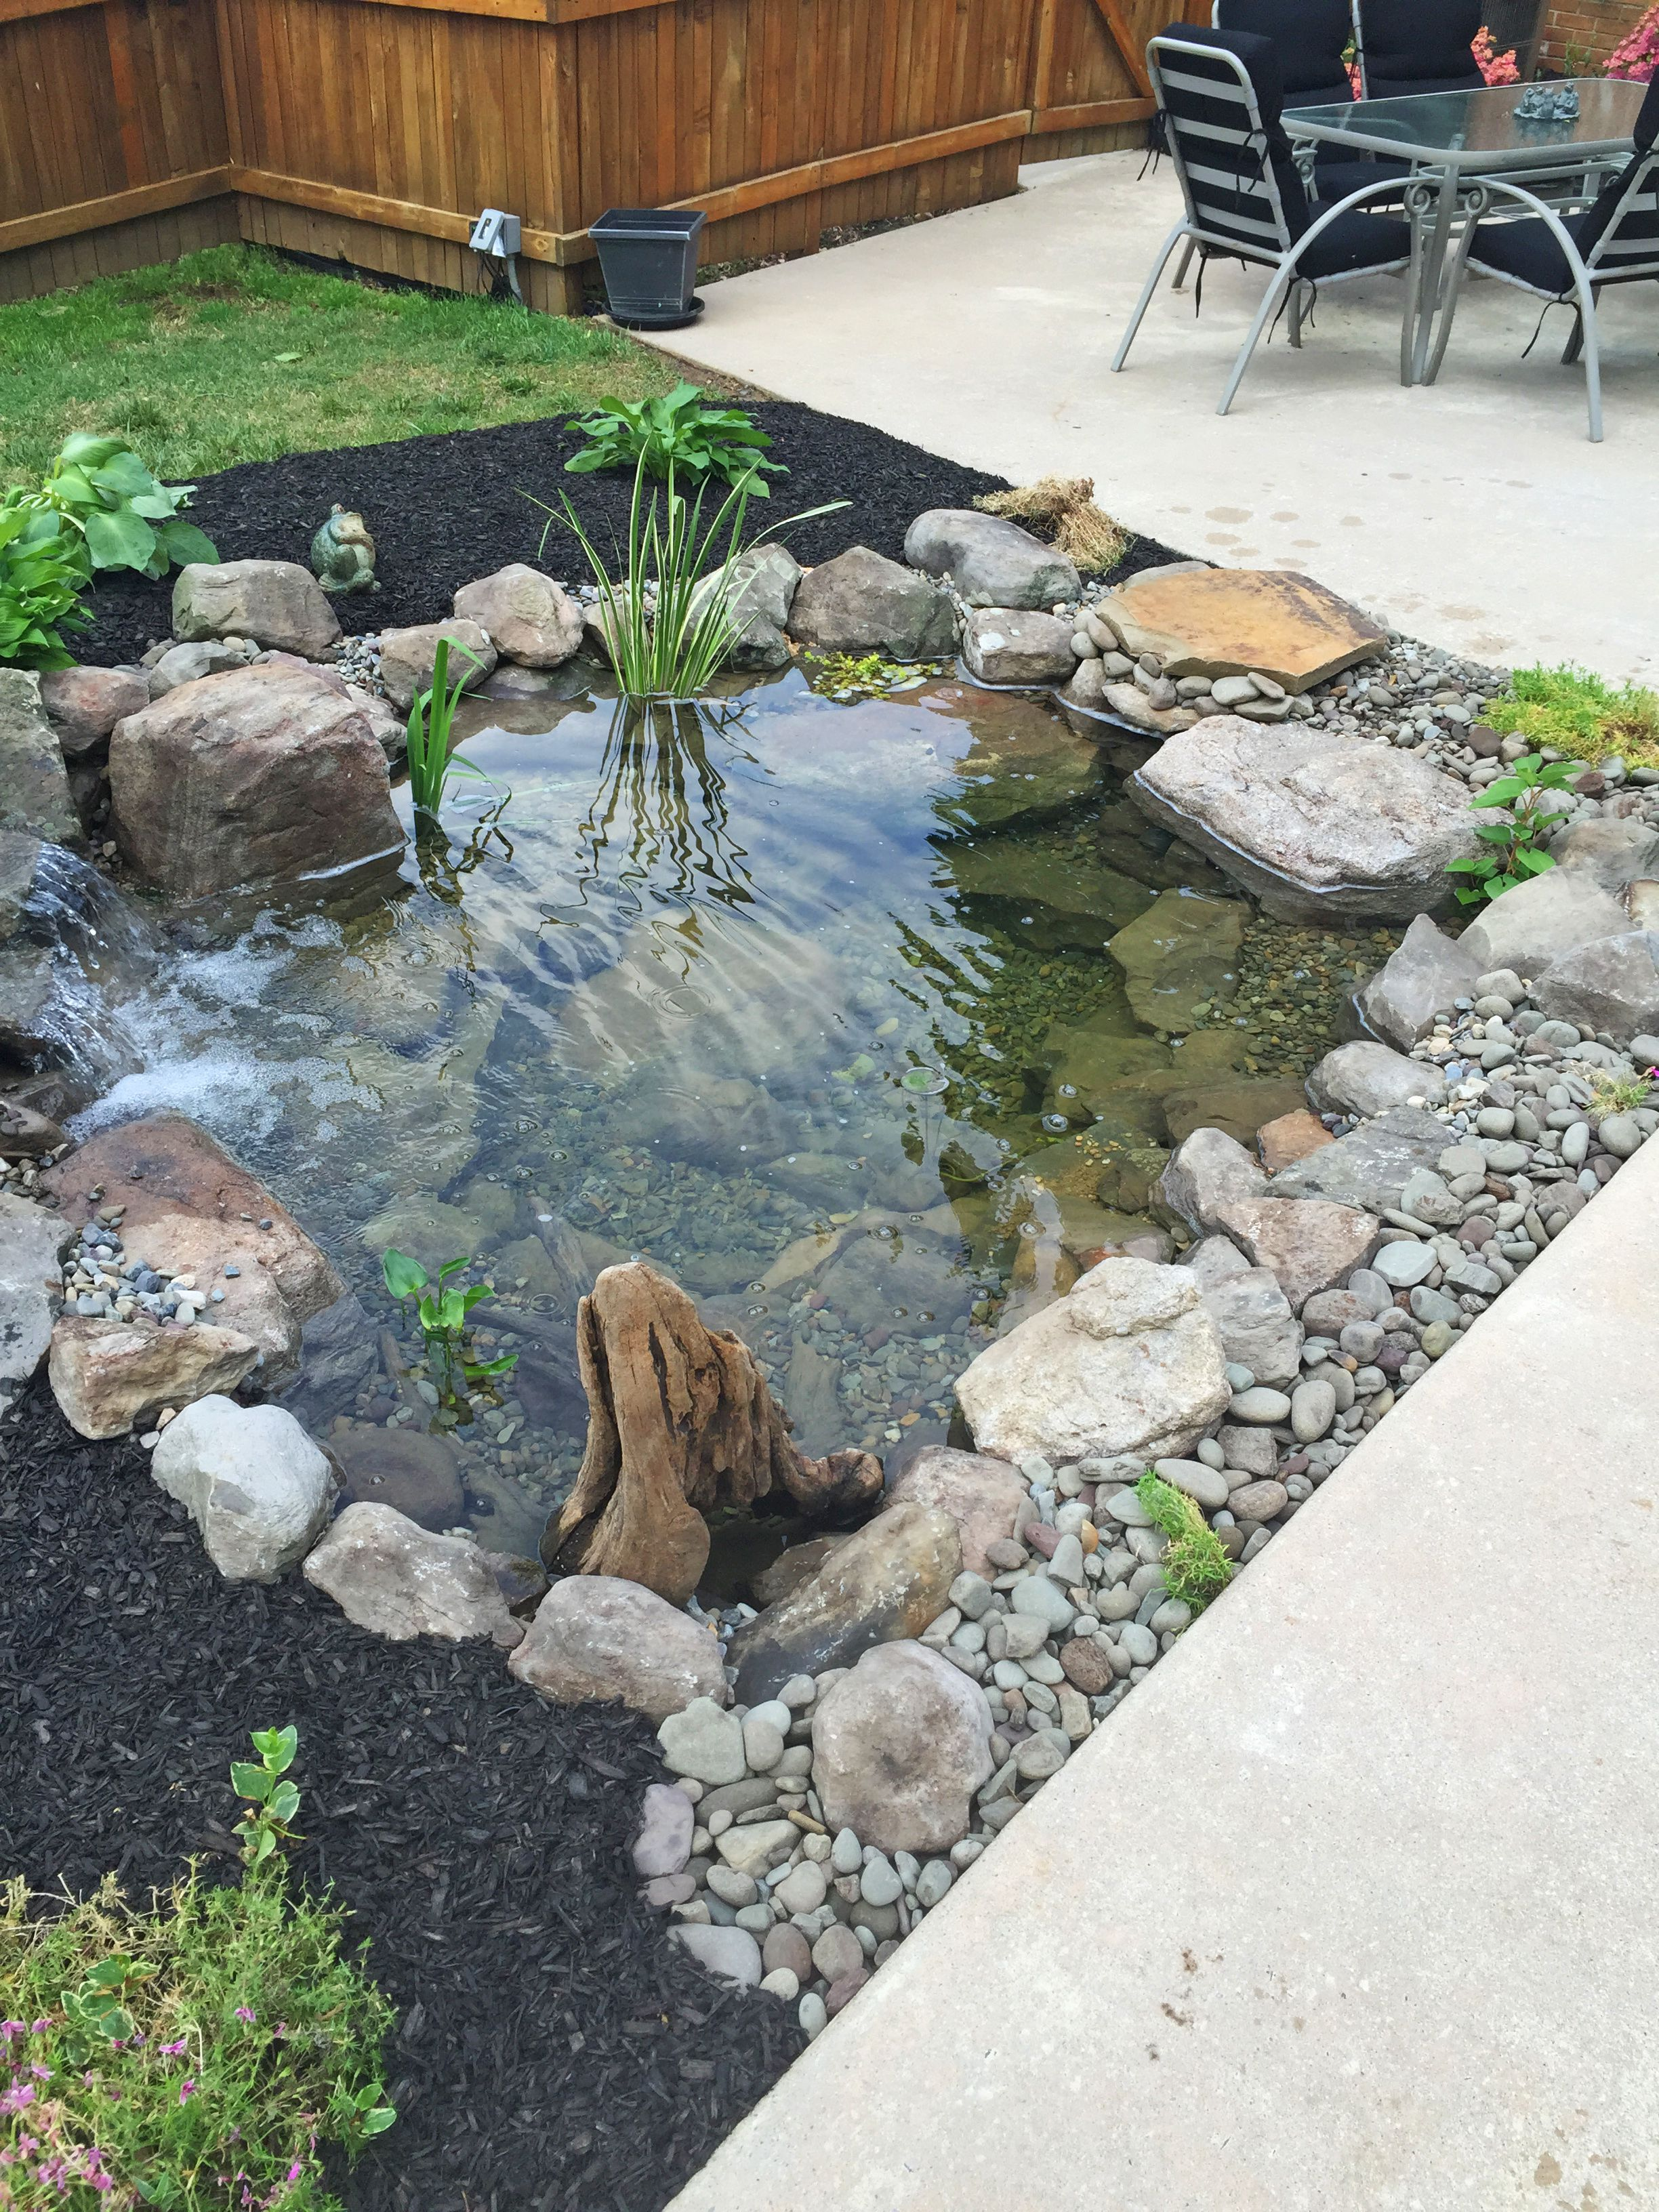 Backyard fish pond waterfall koi water garden waterscapes for Waterfall features for ponds